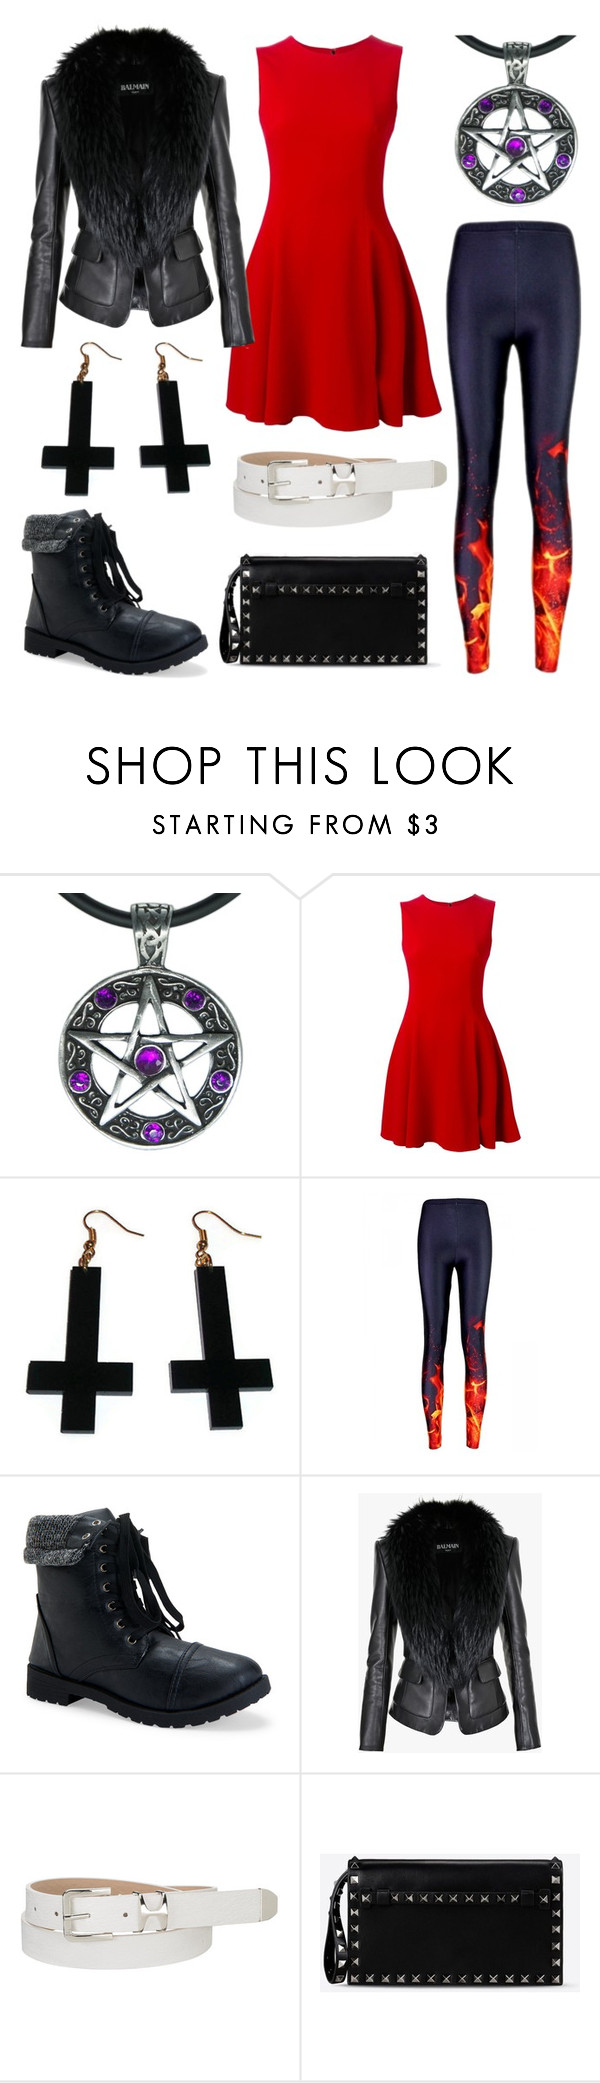 """Lucifer- John Adams"" by broadway-forever ❤ liked on Polyvore featuring moda, Dolce&Gabbana, Chicnova Fashion, Aéropostale, Balmain, maurices, Valentino ve voteforindependency"